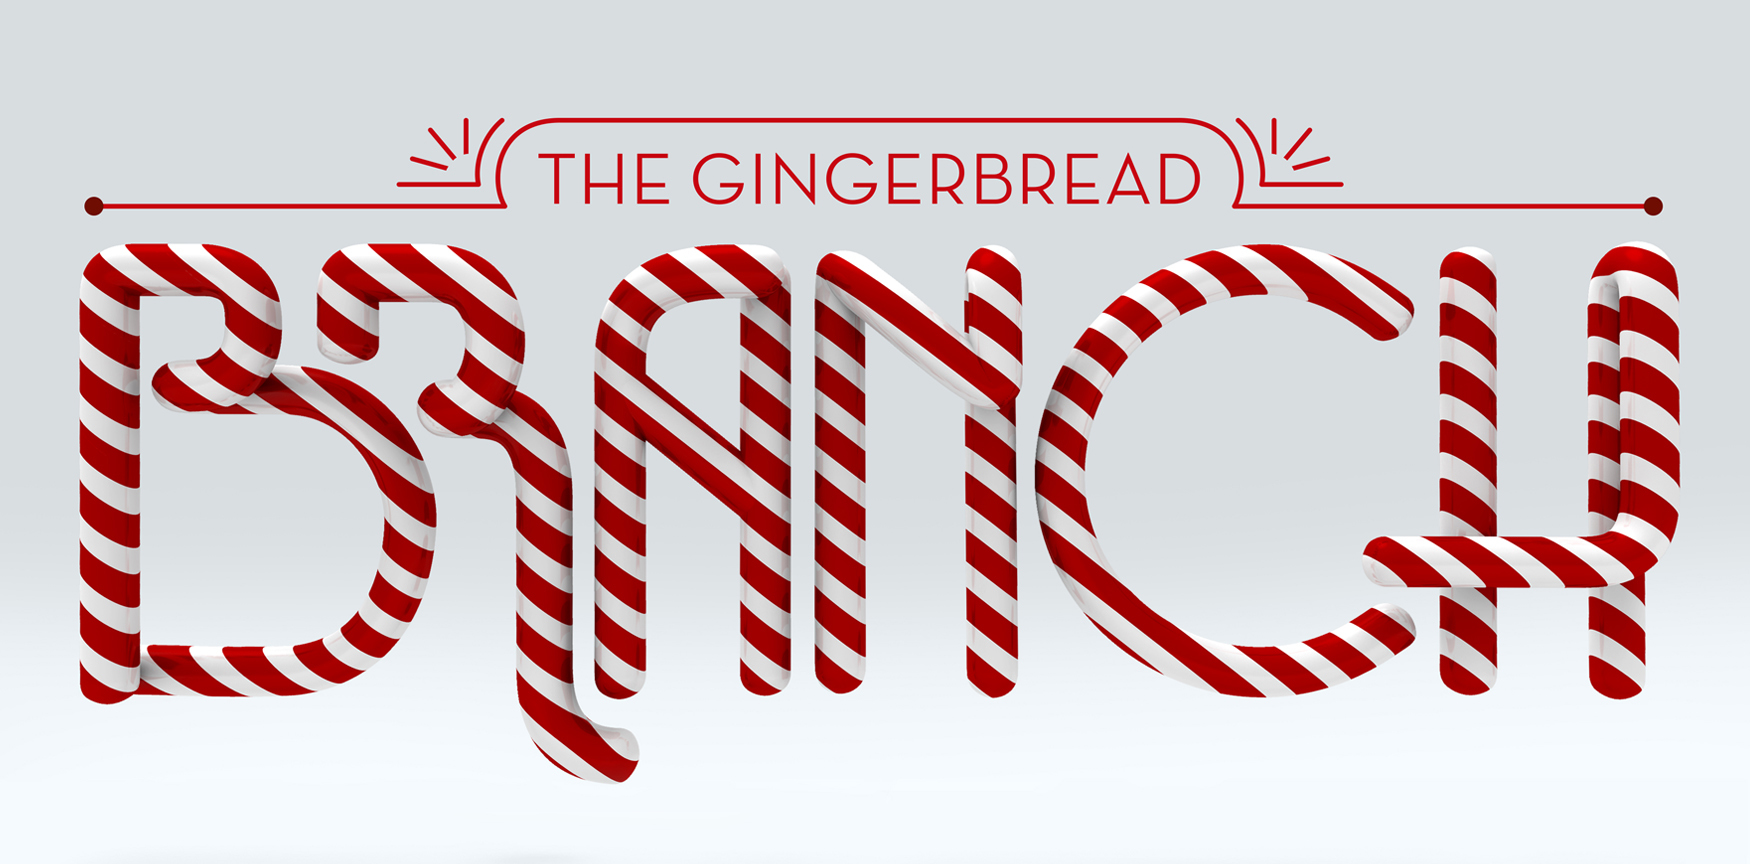 Gingerbread branch